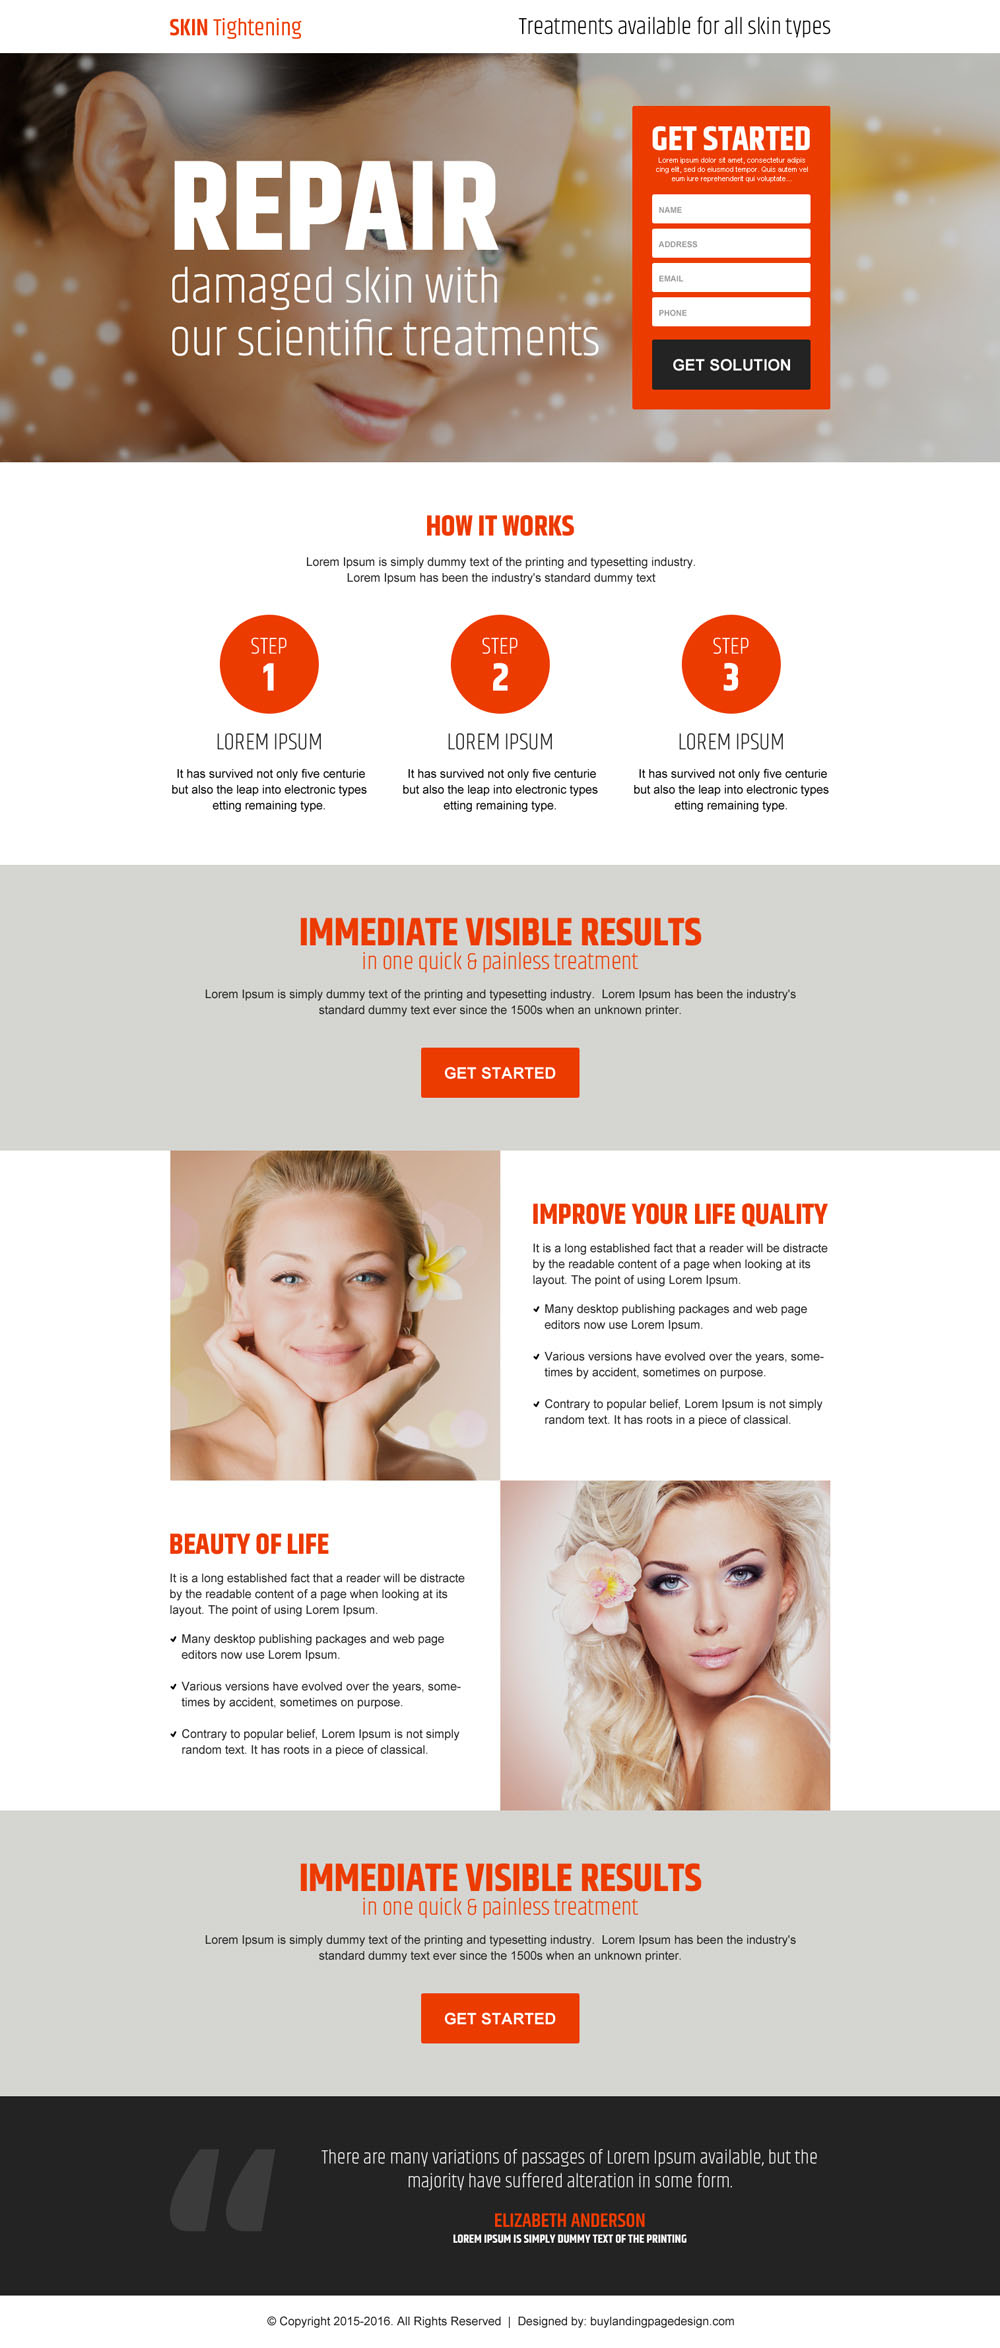 skin-tightening-and-rejuvenating-product-selling-lead-gen-landing-page-design-020